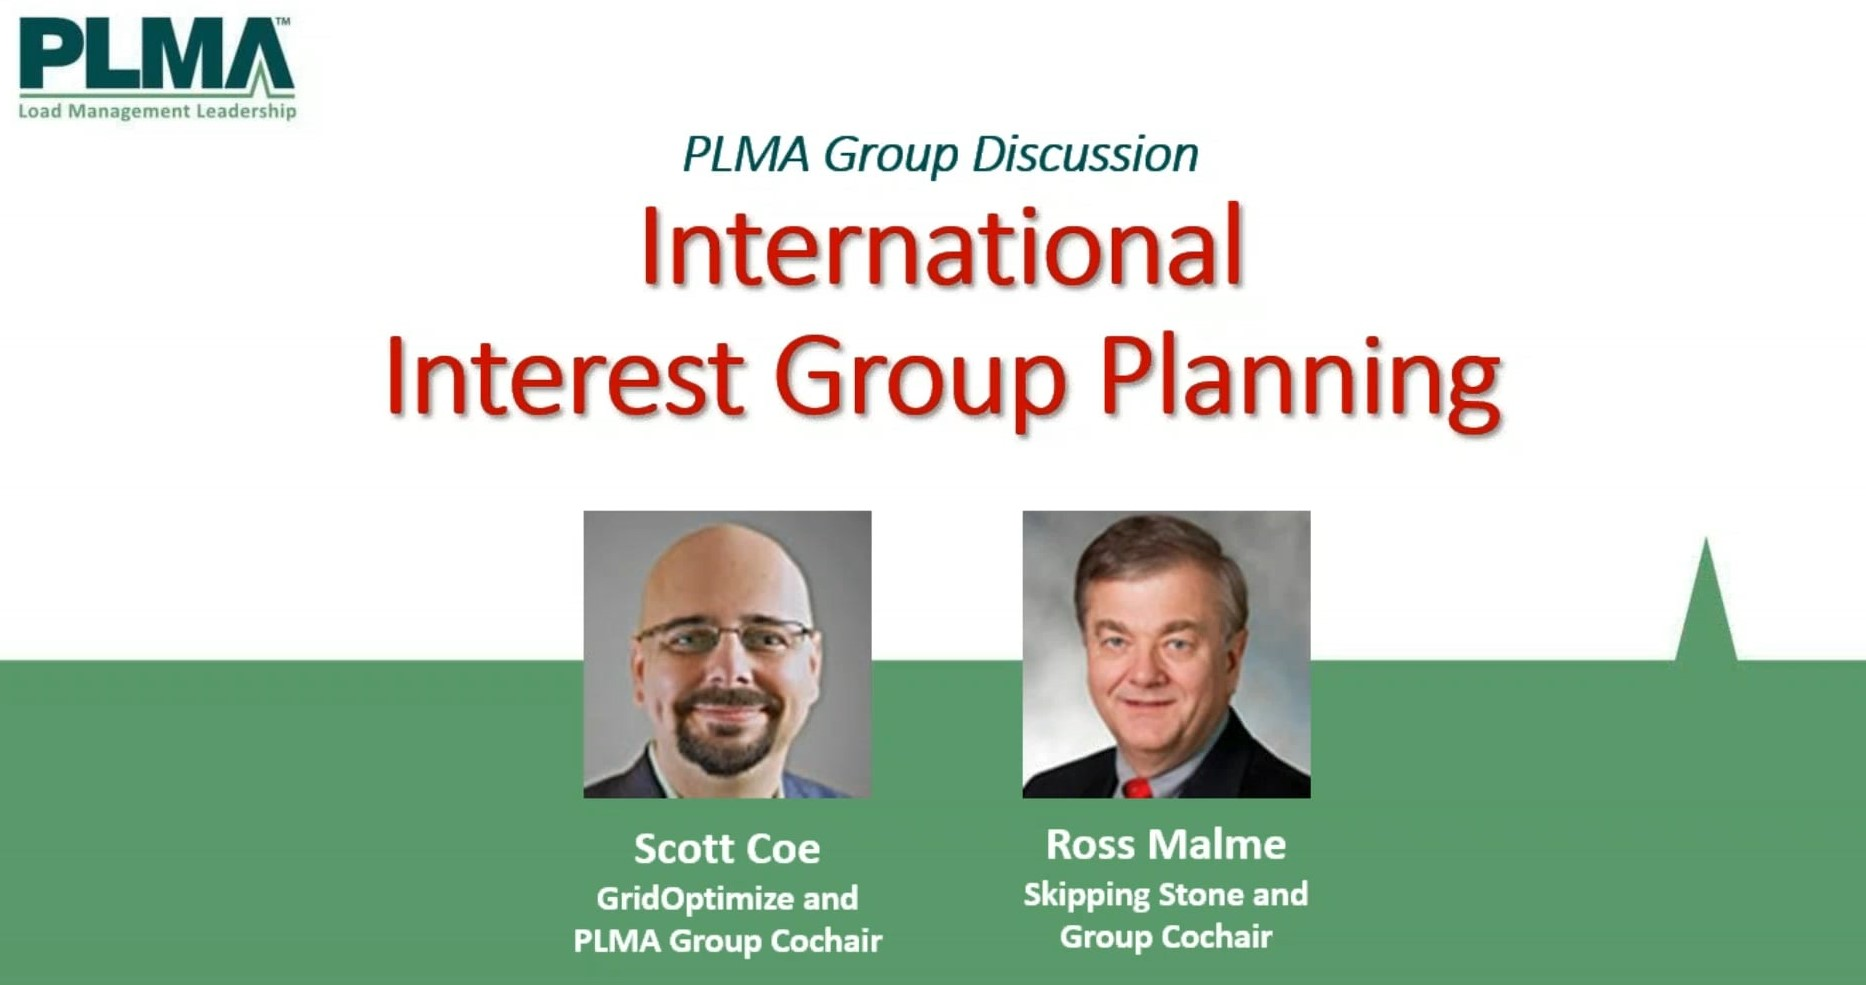 International Interest Group